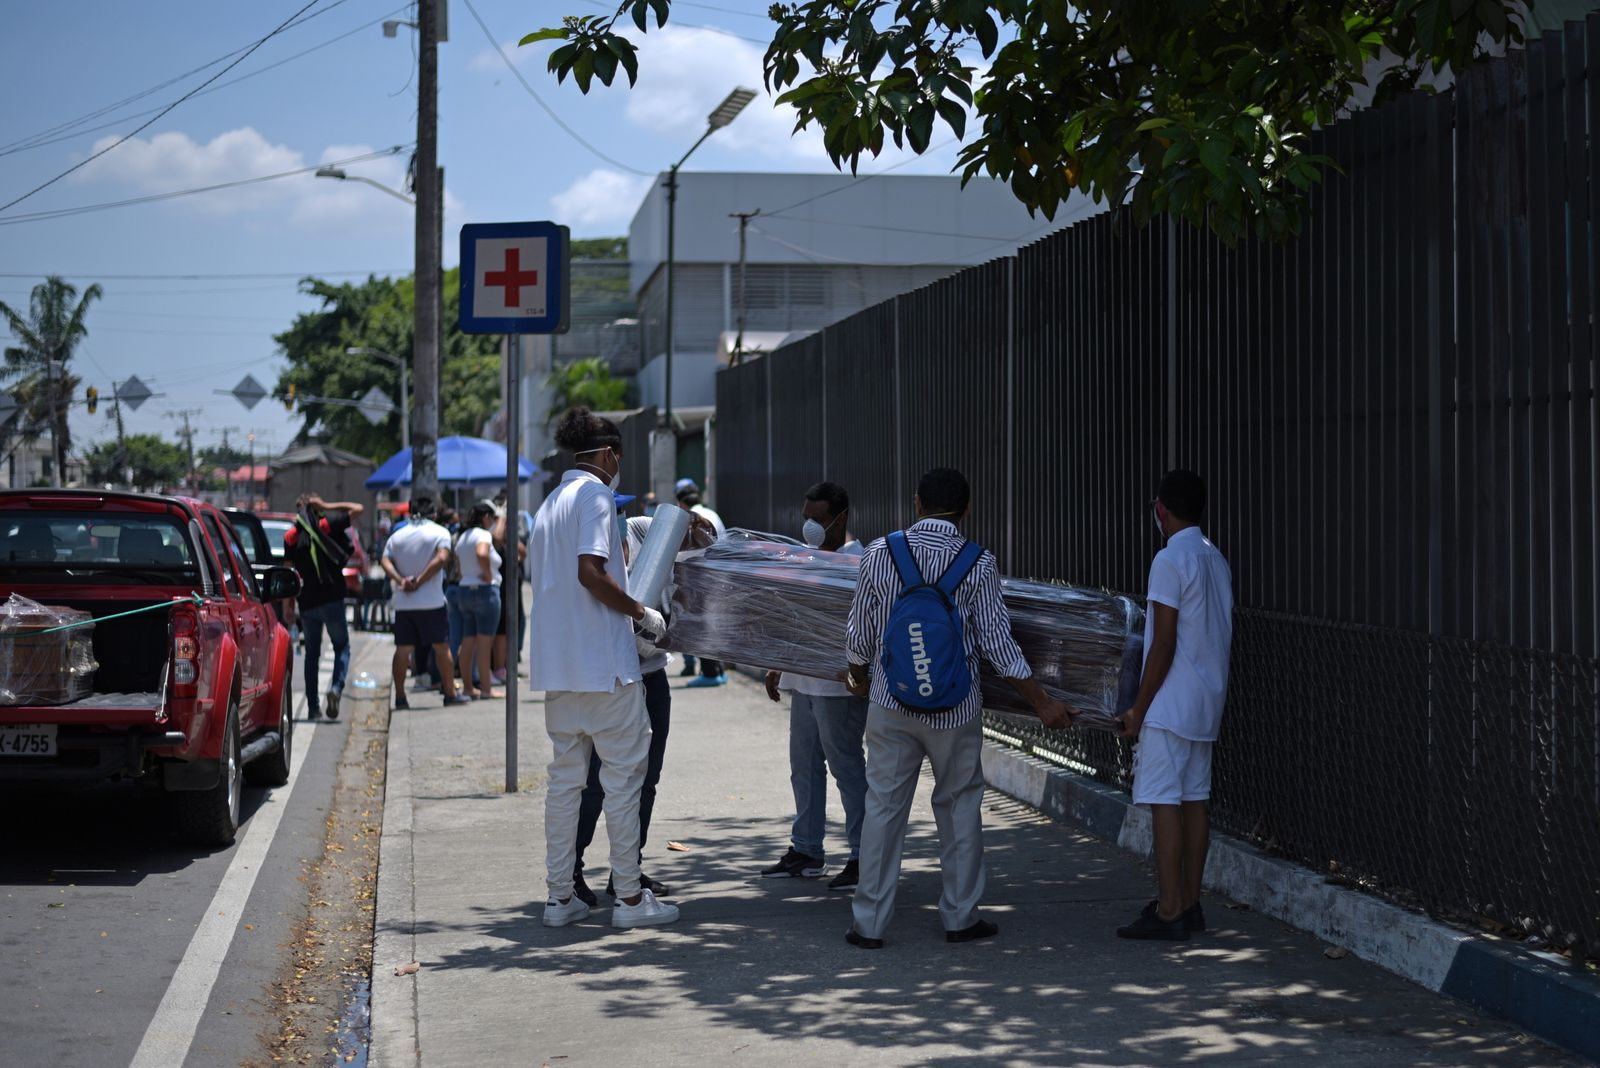 People wrap a coffin with plastic sheeting outside of Teodoro Maldonado Carbo Hospital amid the spread of the coronavirus disease (COVID-19), in Guayaquil